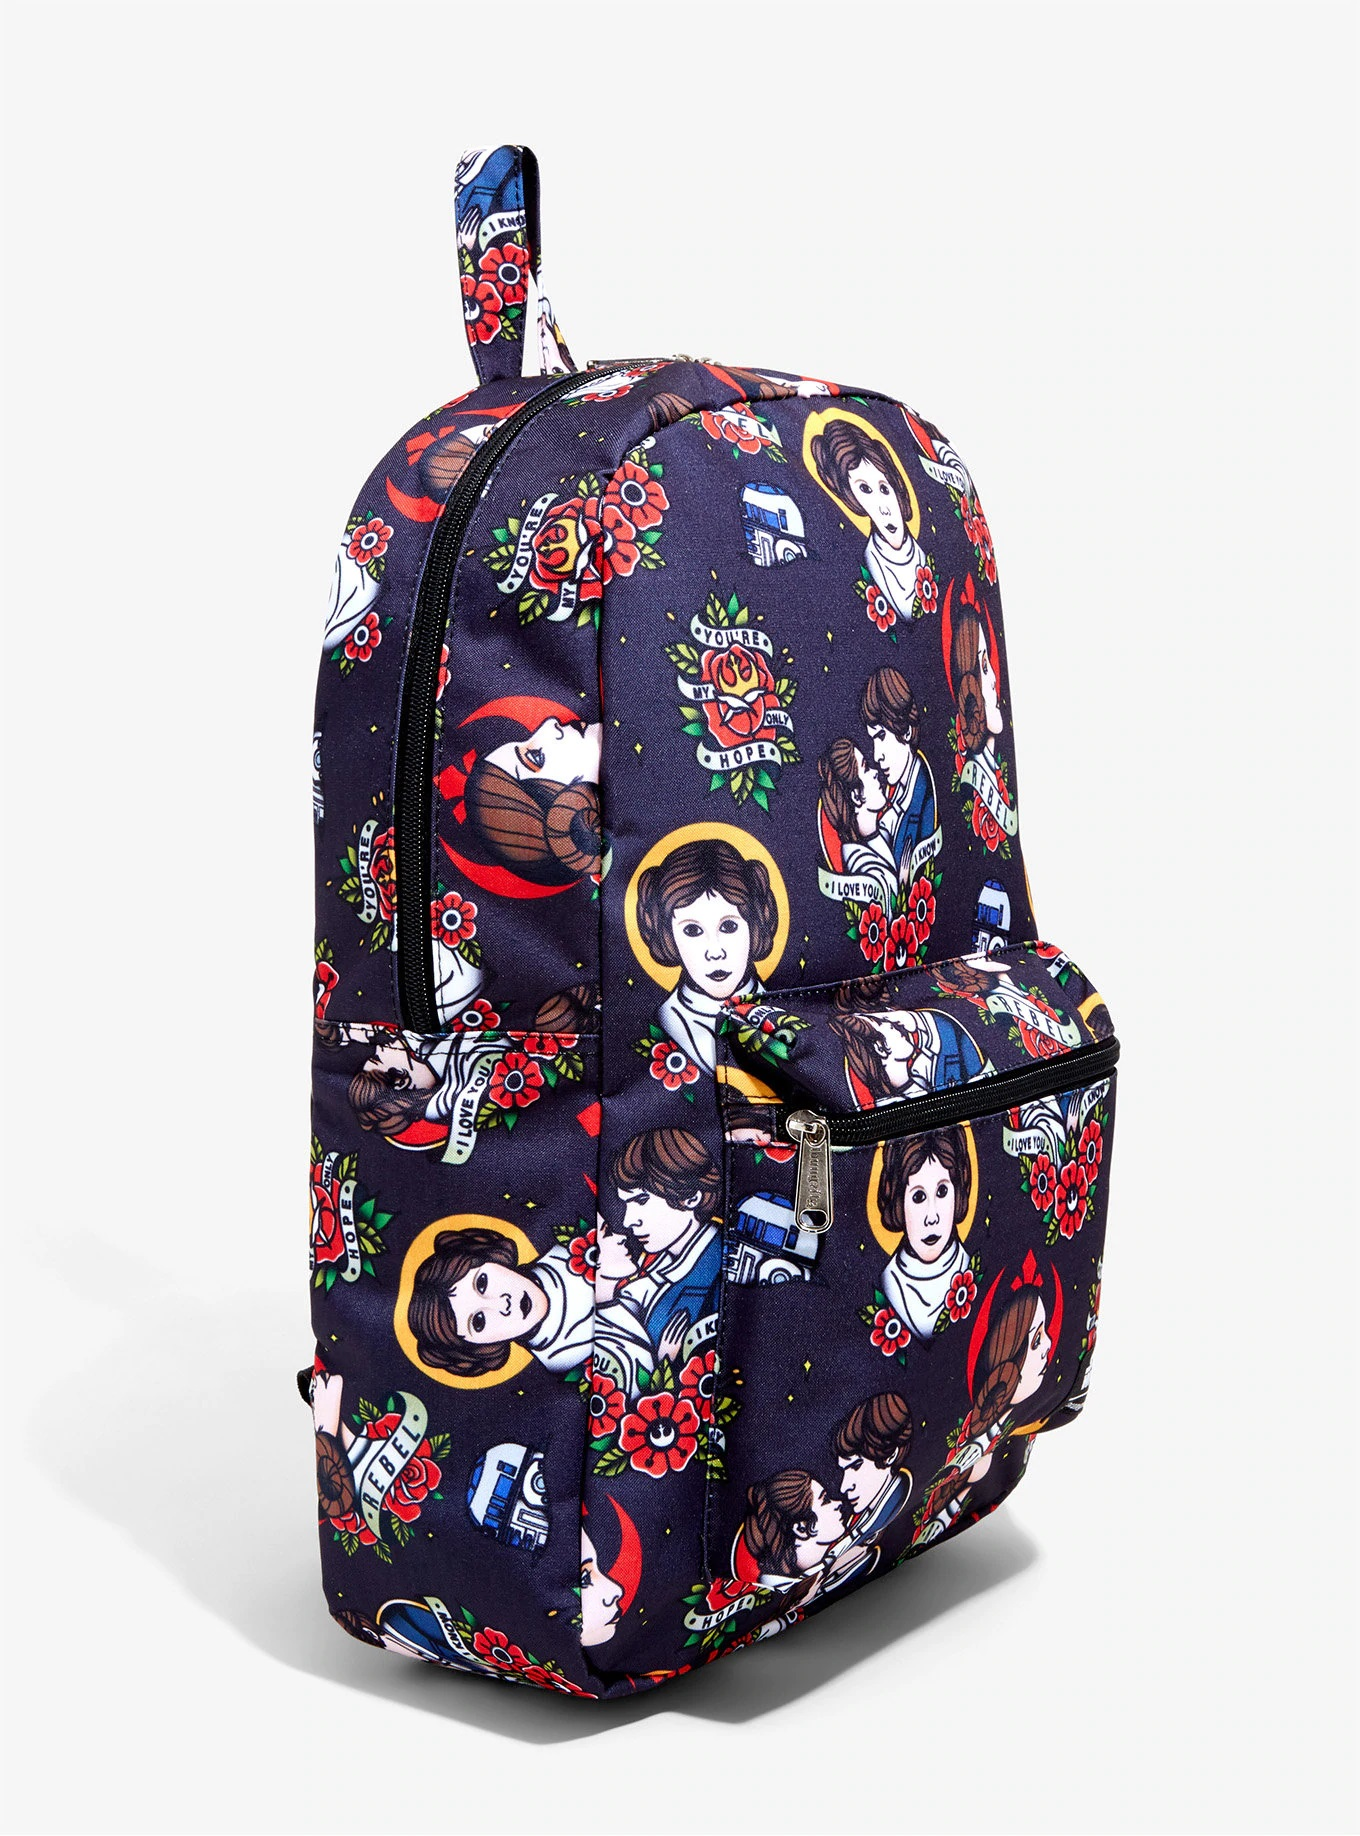 Loungefly x Star Wars Princess Leia and Han Solo Tattoo Print Backpack at Hot Topic